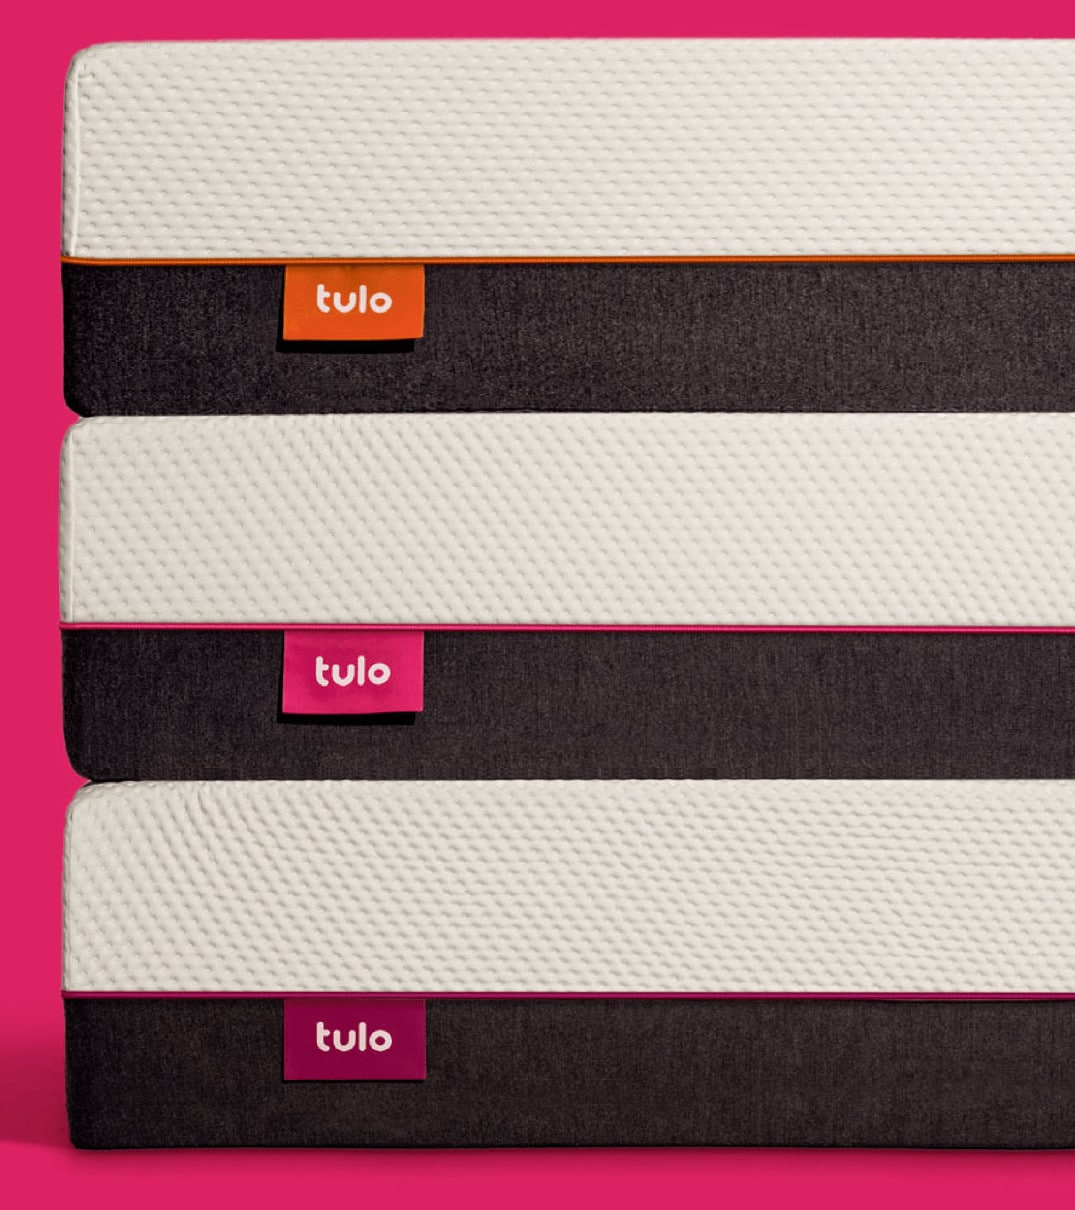 tulo stacked mattress pink